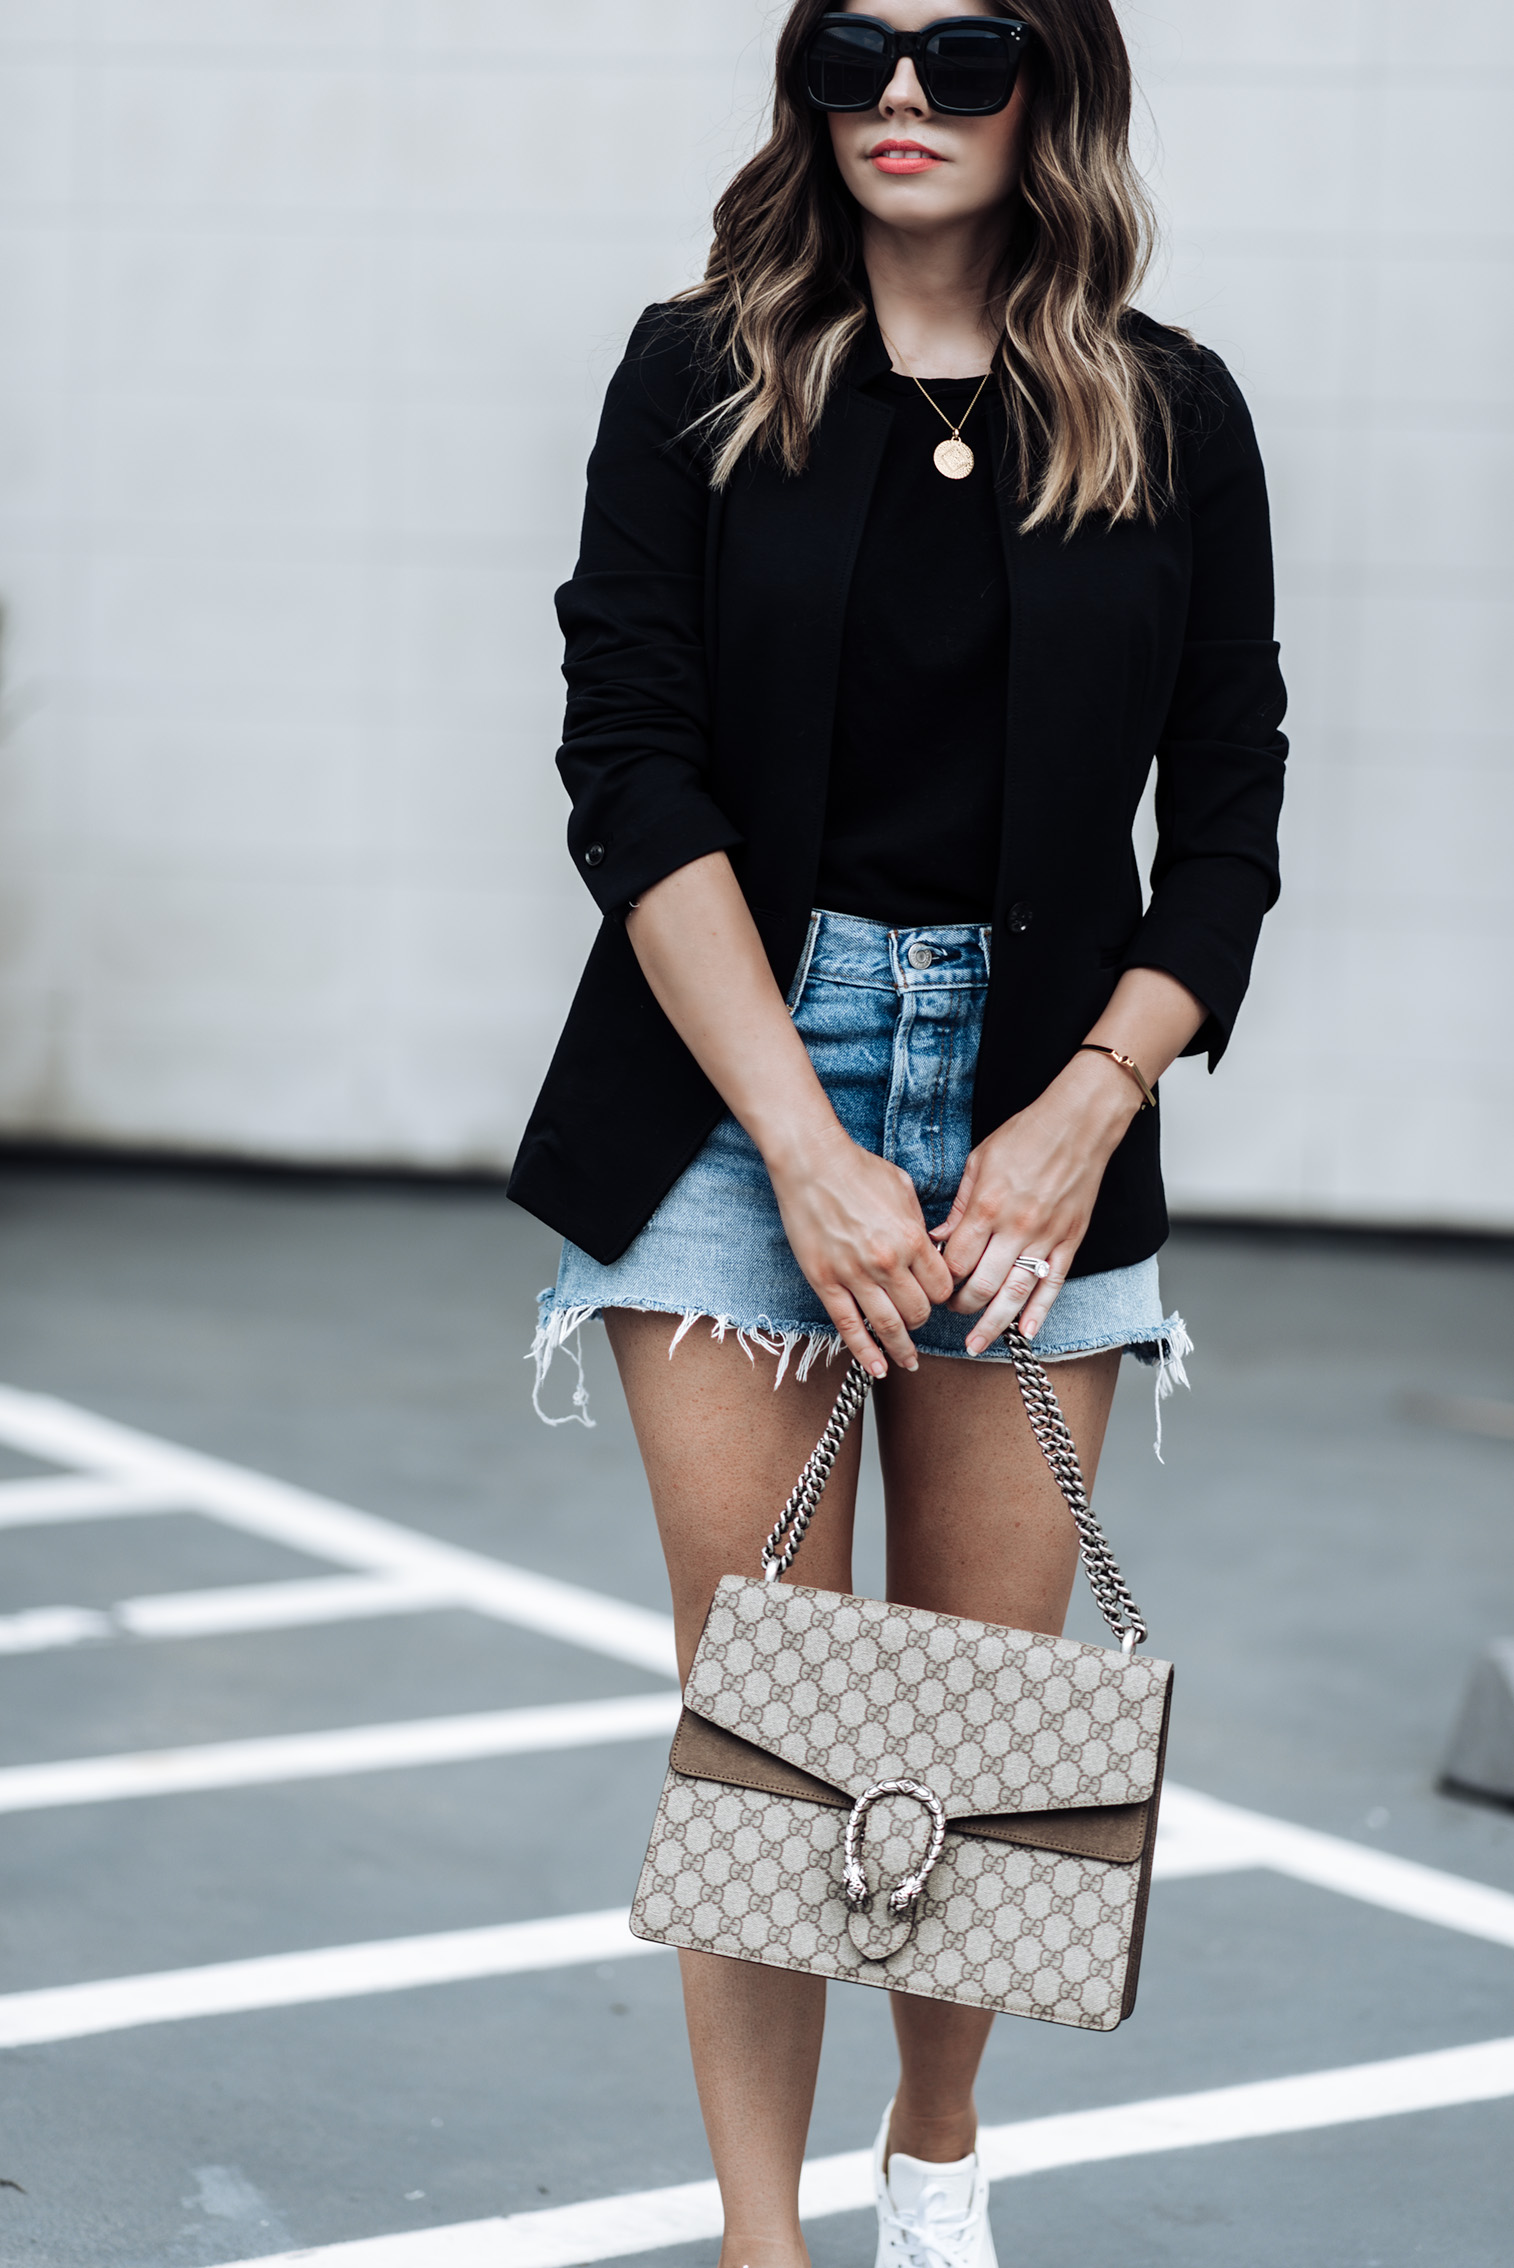 Tiffany Jais Houston fashion and lifestyle blogger   Fall must have pieces with Banana Republic, click to shop the look   Sneaker fashion, Longline Blazer   Basic Black Tee   Greats sneakers   Gucci Dionysus bag   Parker Distressed Denim Shorts   Marie Pendant